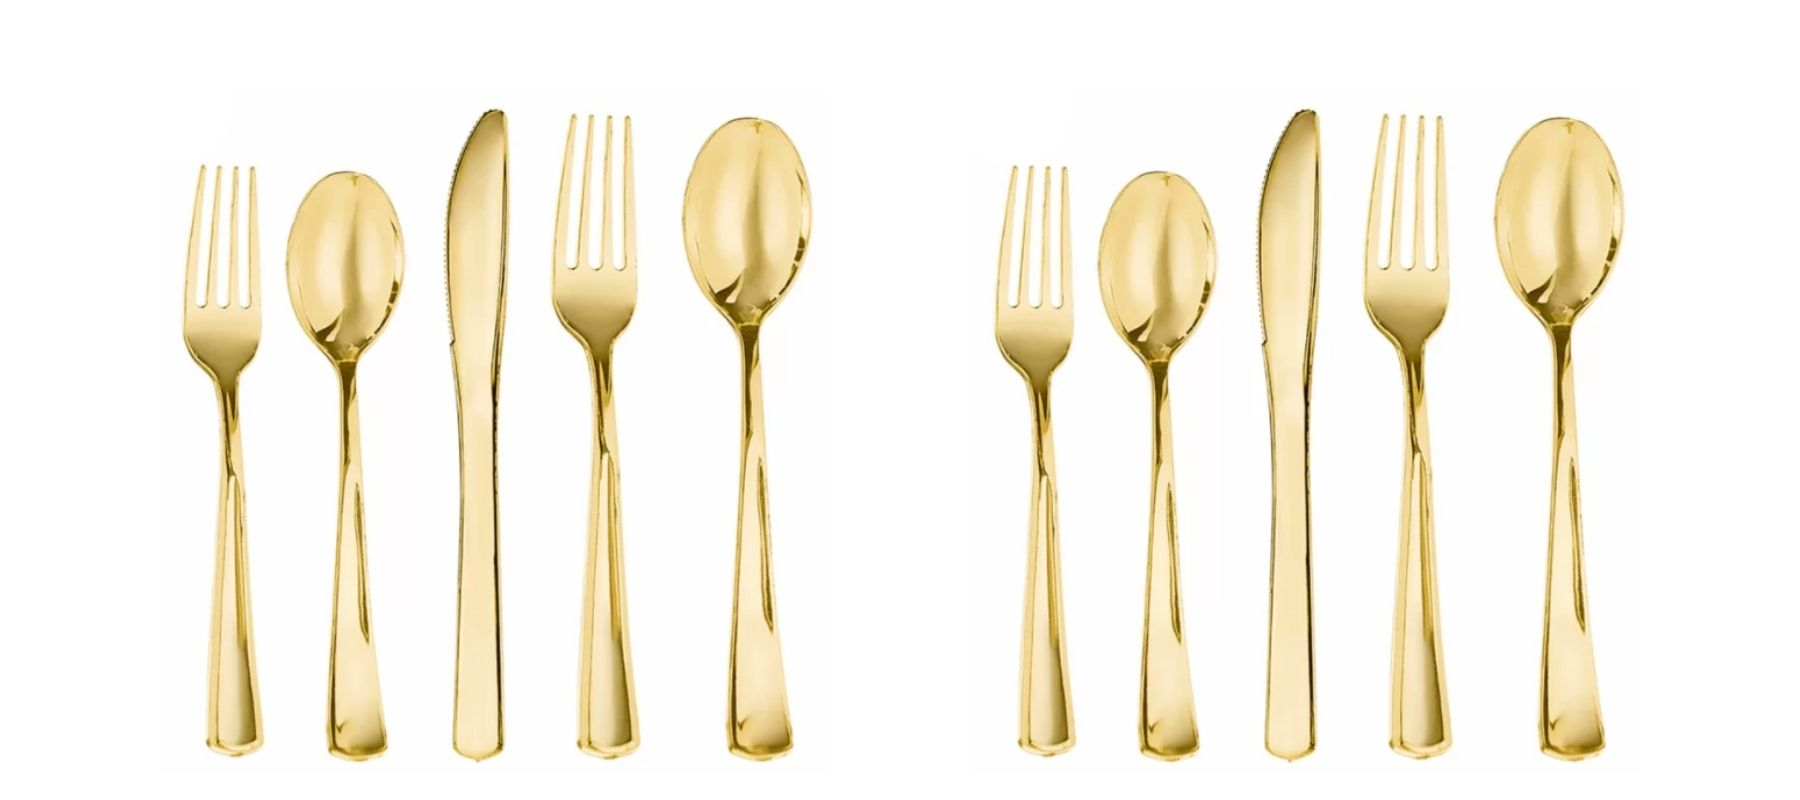 Best Disposable Plates for your Wedding - amscan gold utensils plastic